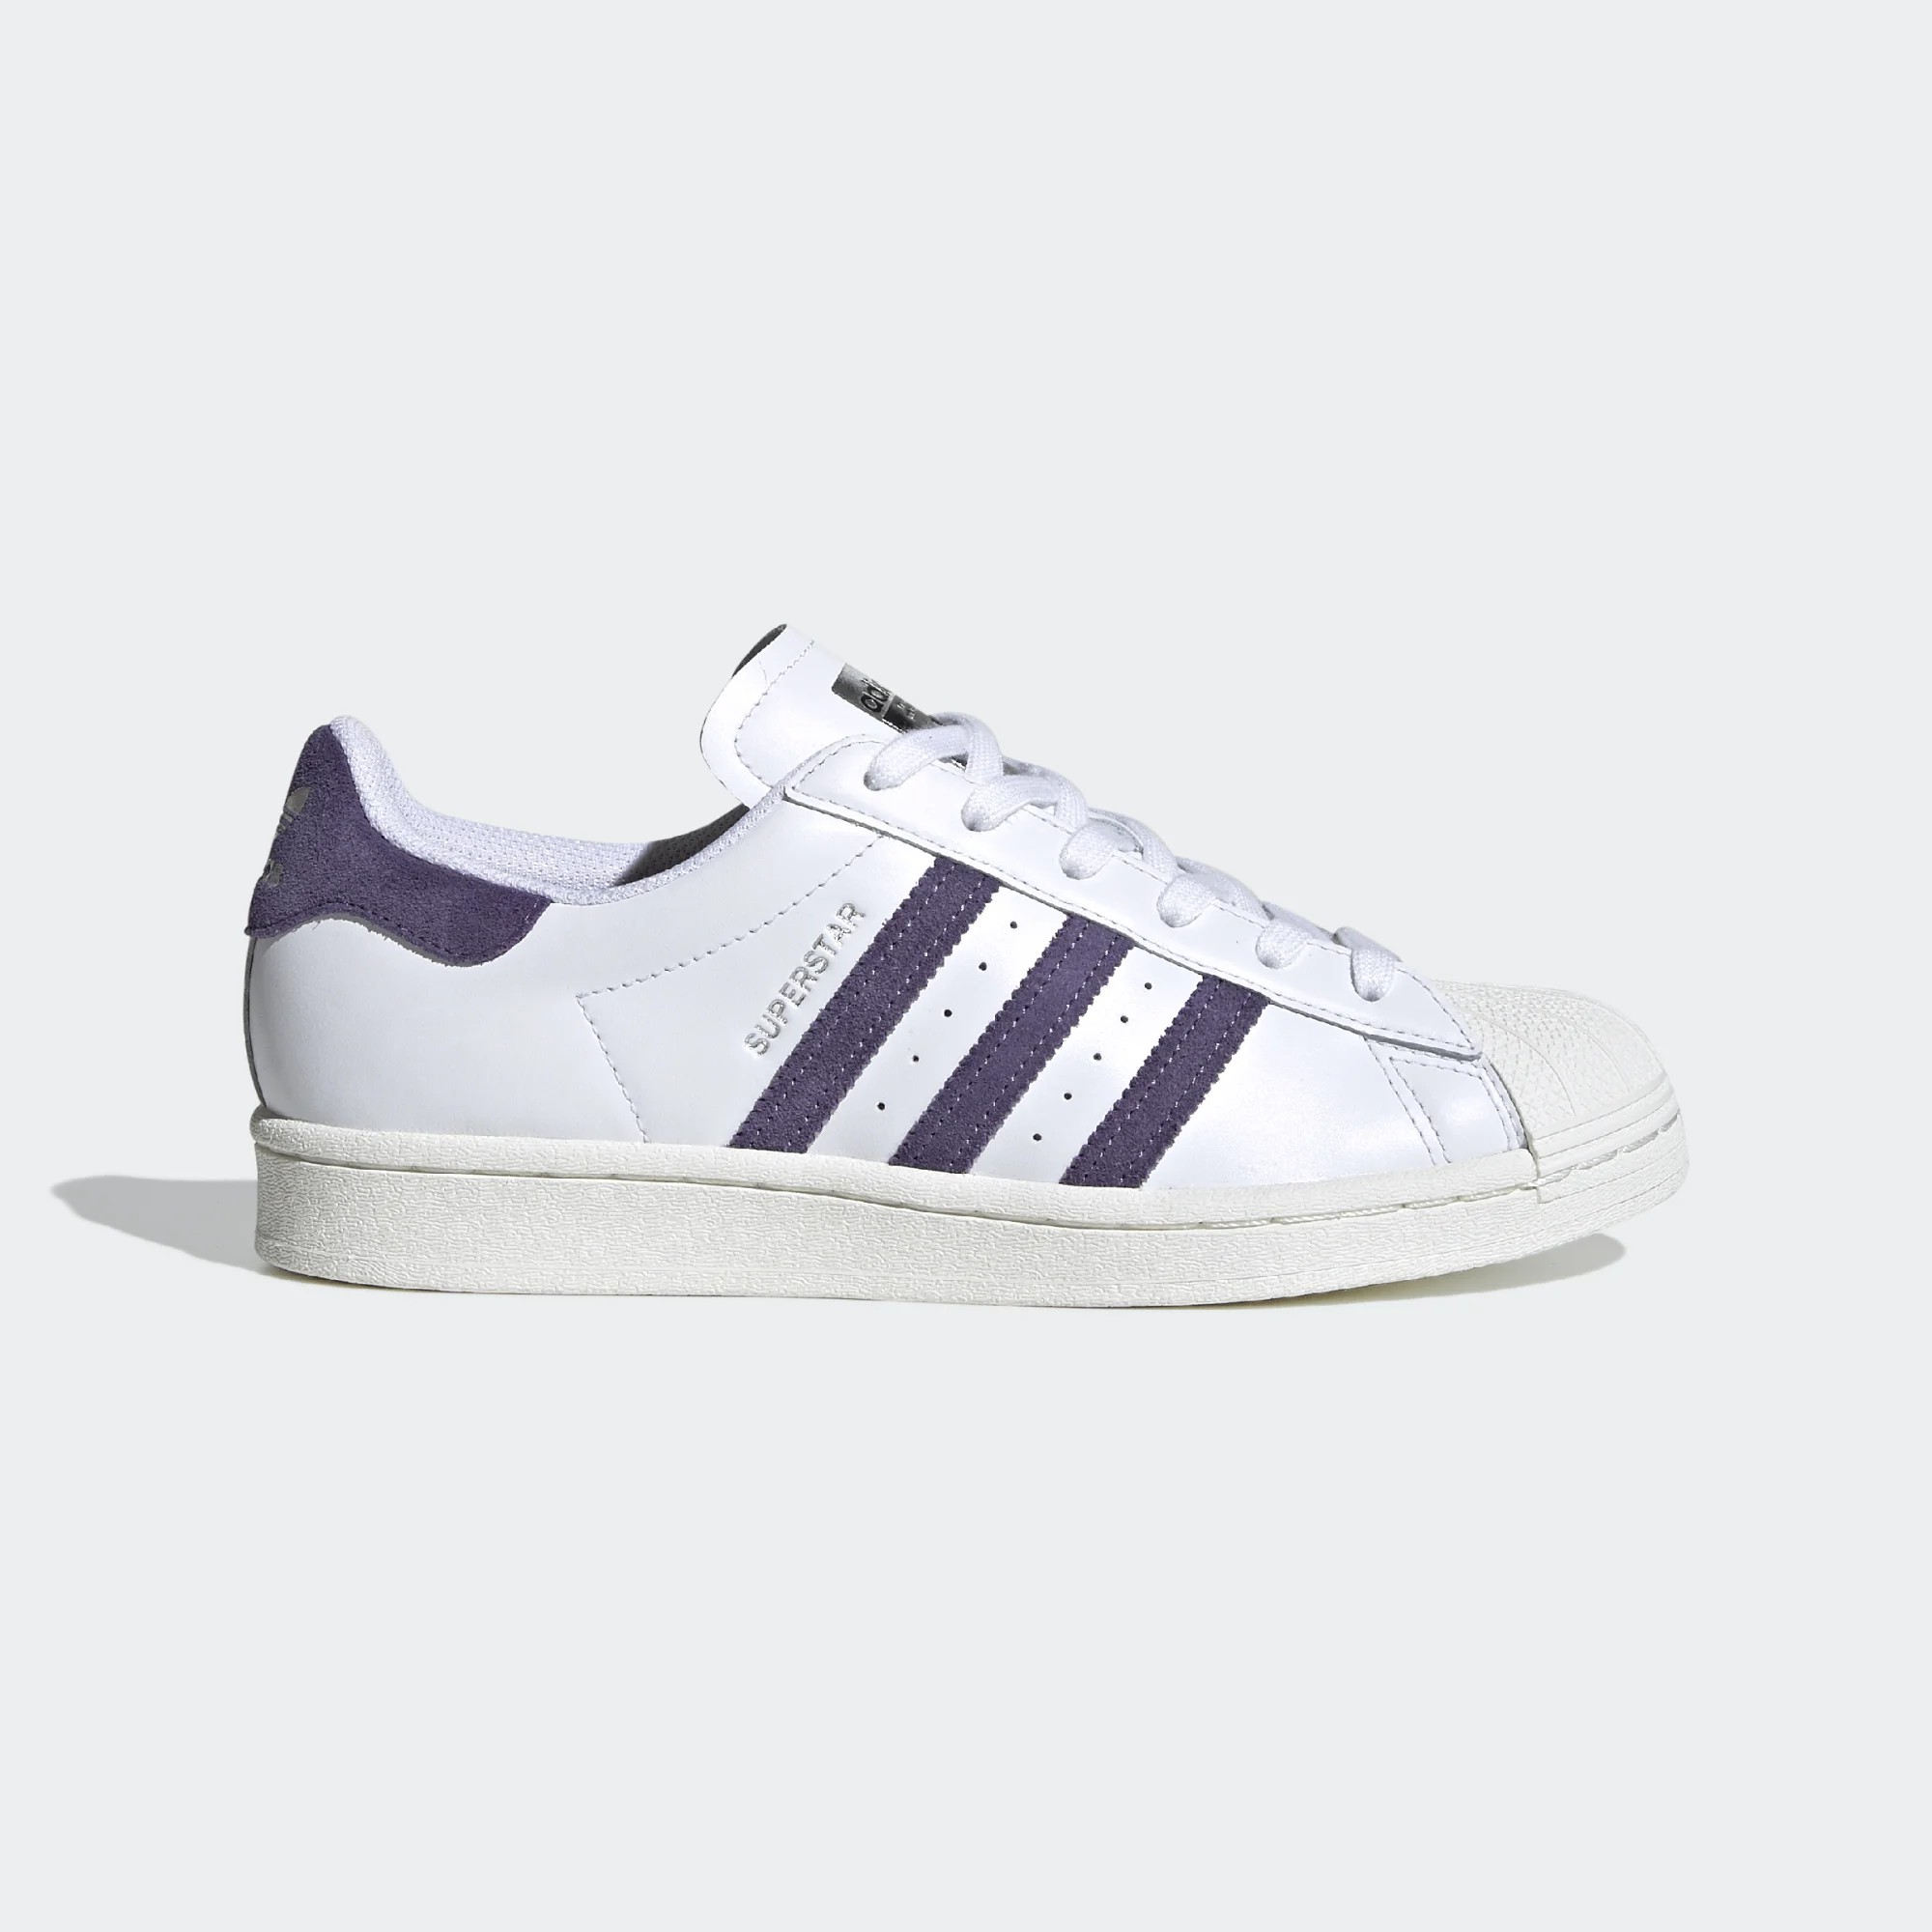 adidas Originals Superstar Mujer Blancas Sneakers FV3373